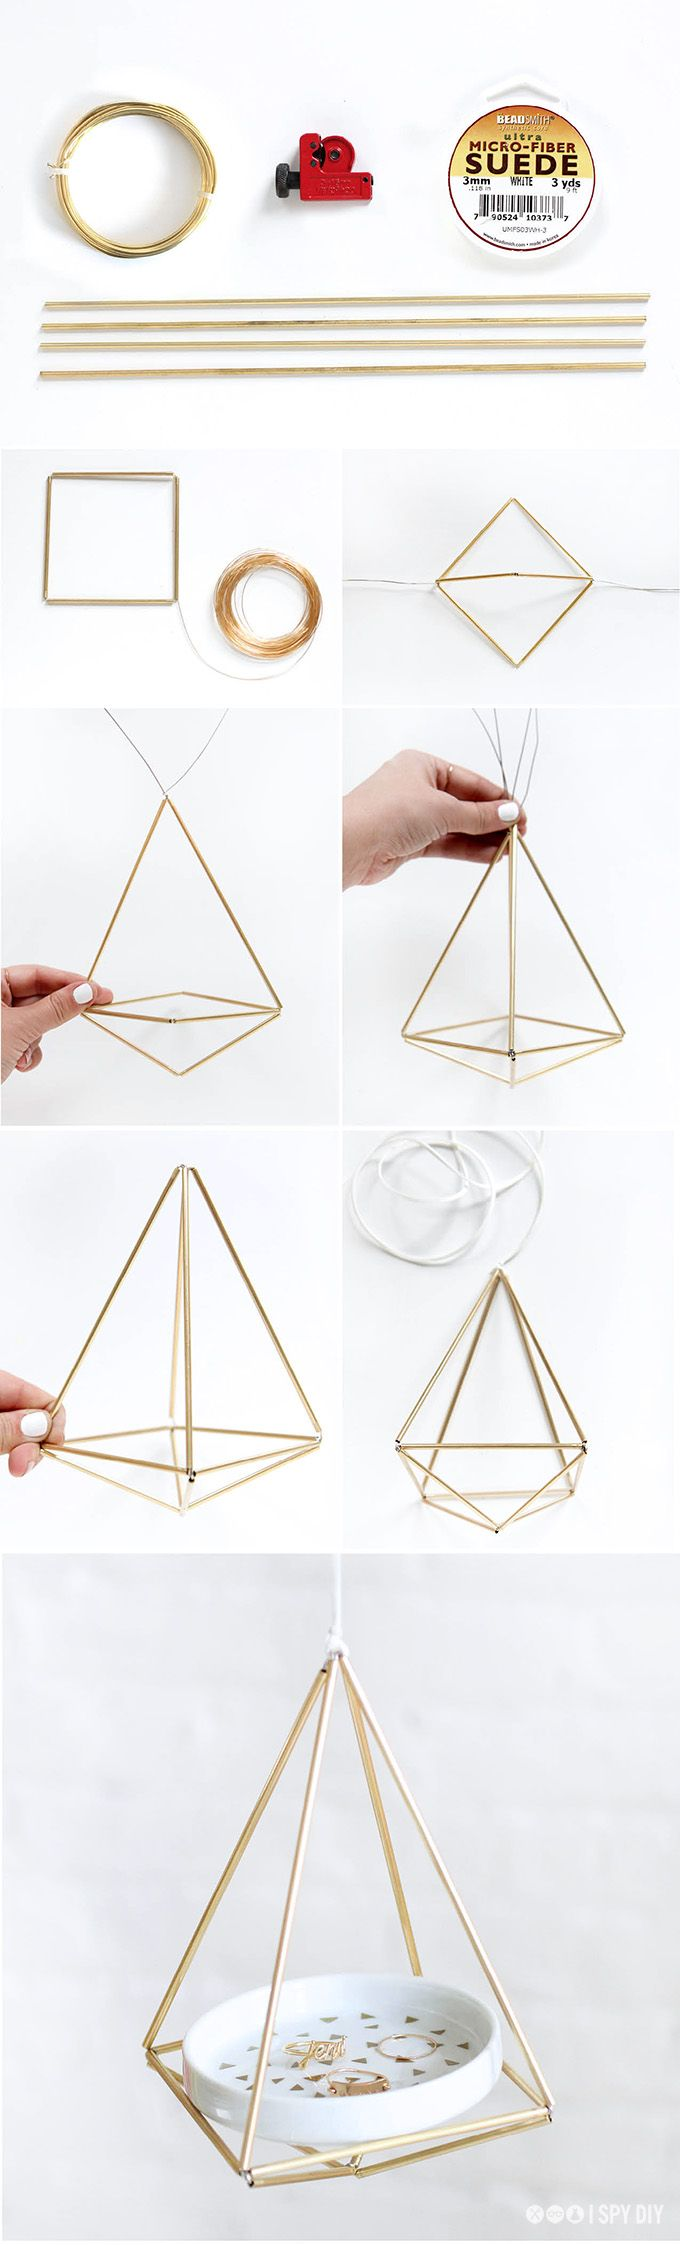 DIY Brass Himmeli Hanger Step-by-Step Tutorial